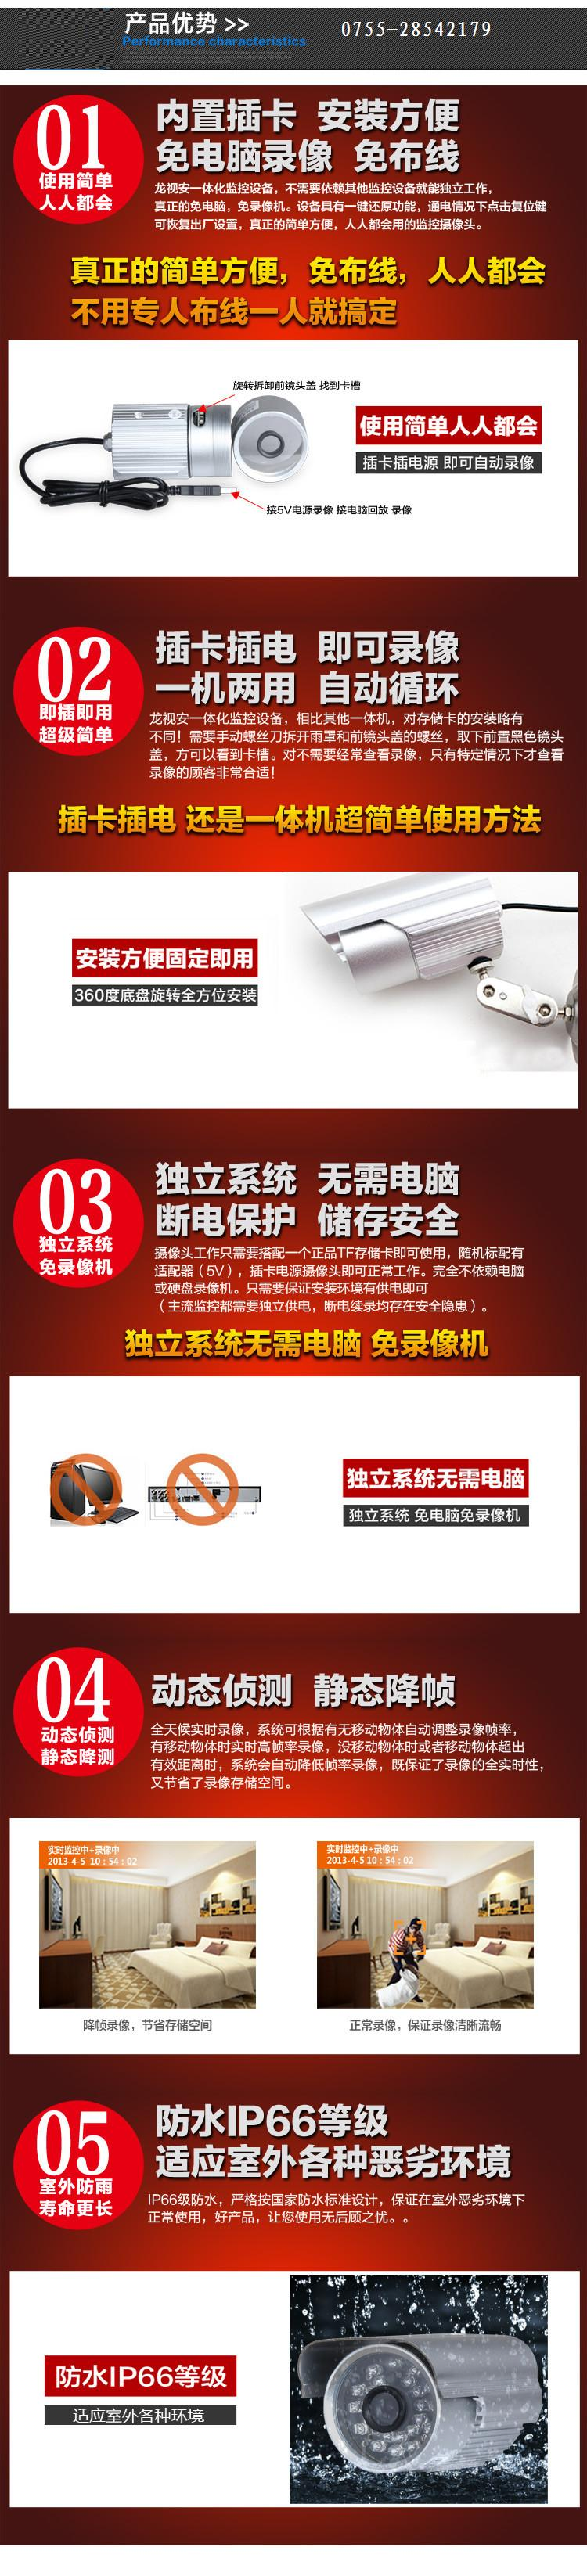 Free Wiring Card Camera Usb Intelligent Surveillance Video Cameras No Comments